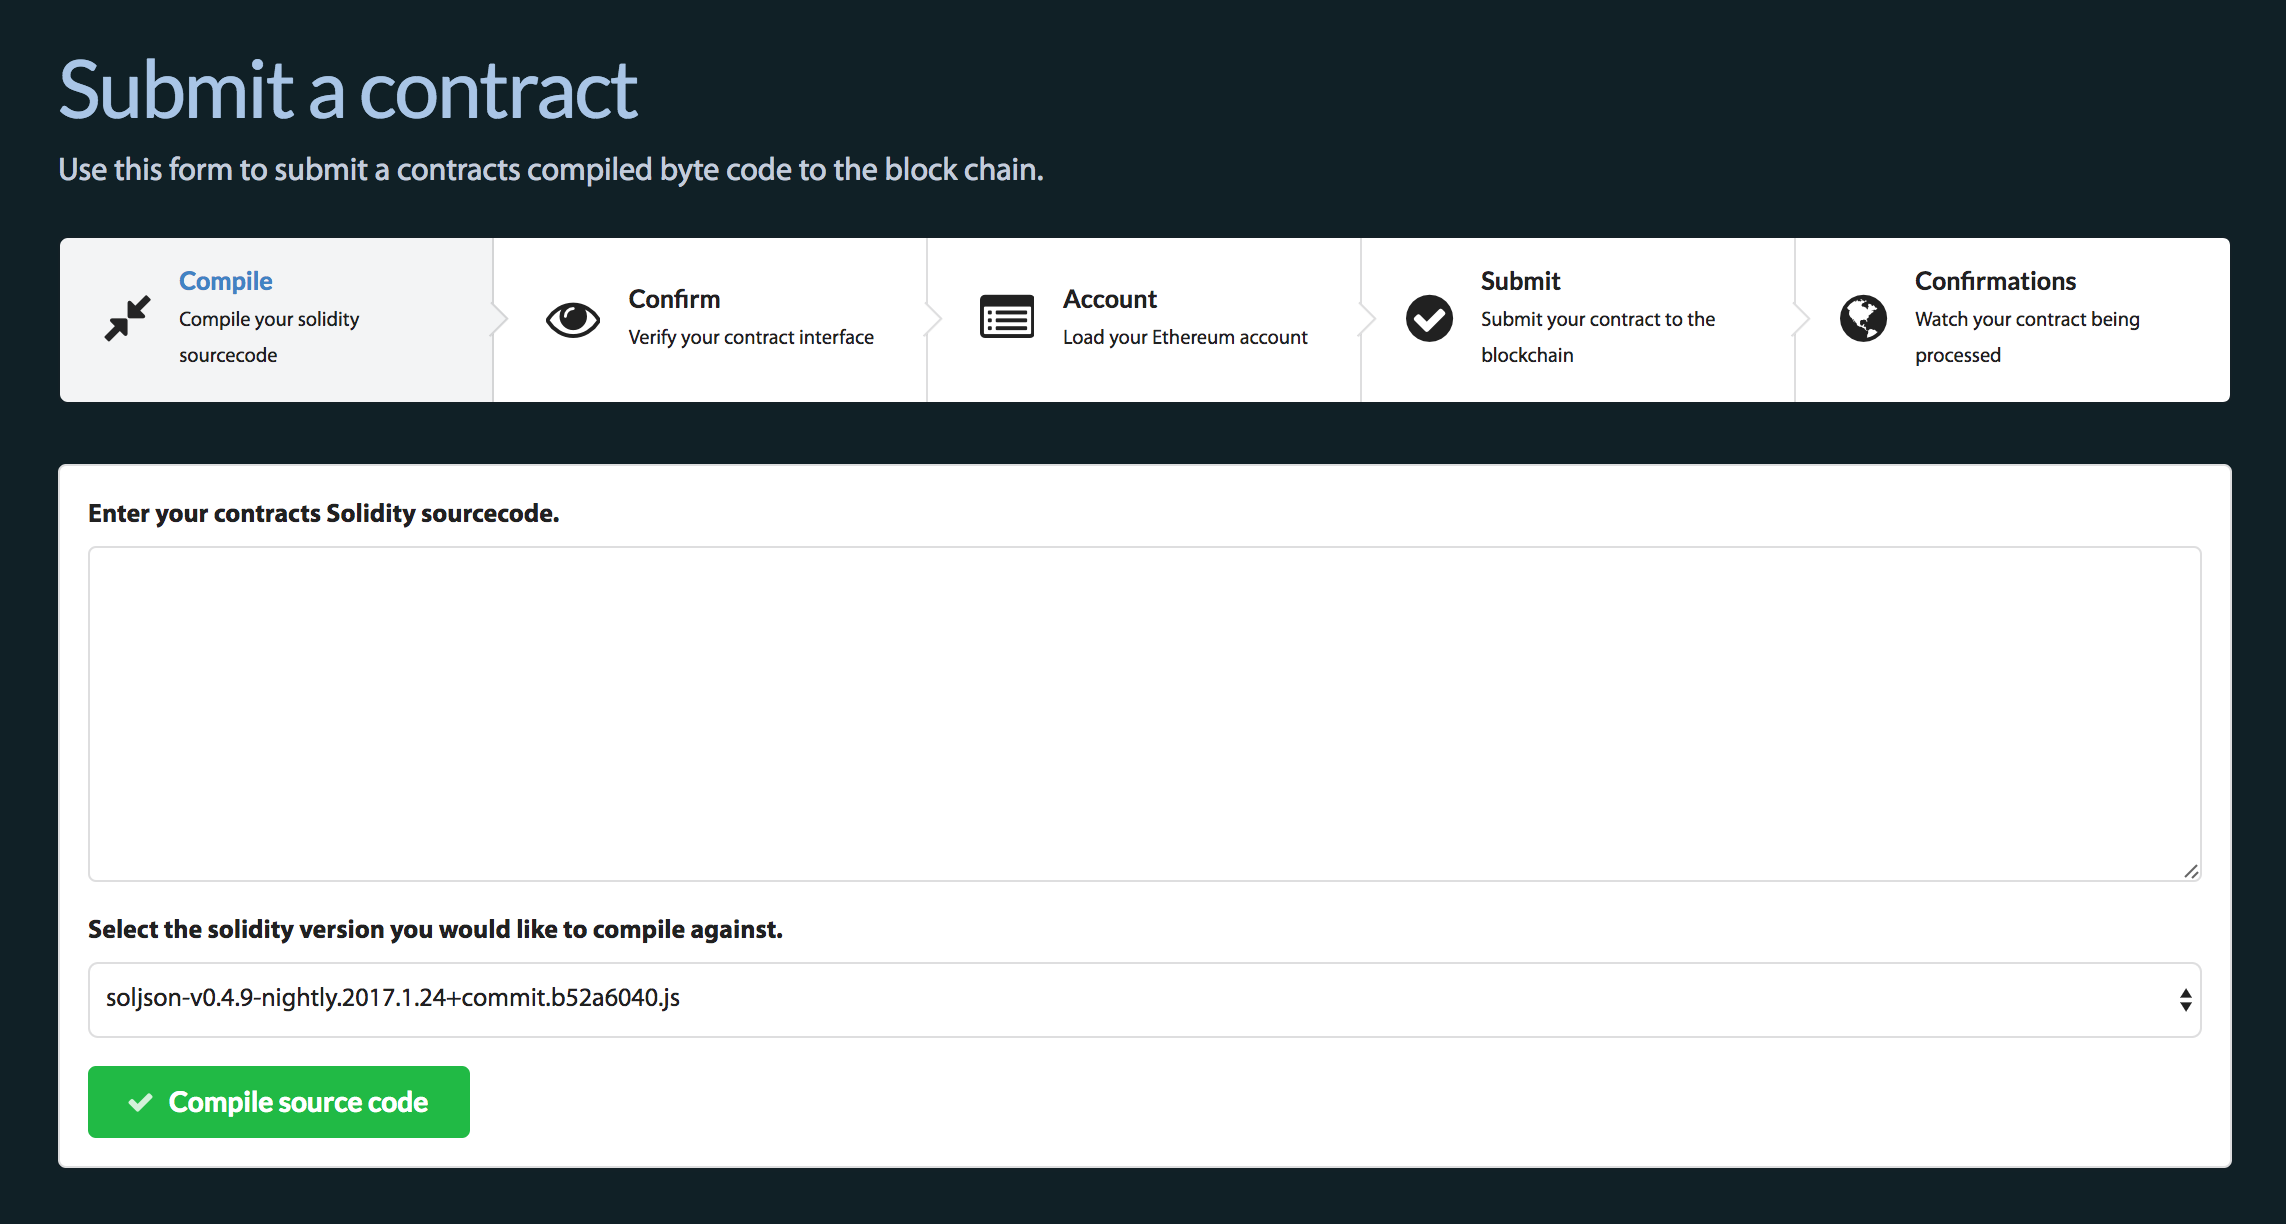 Submit a contract in easy steps